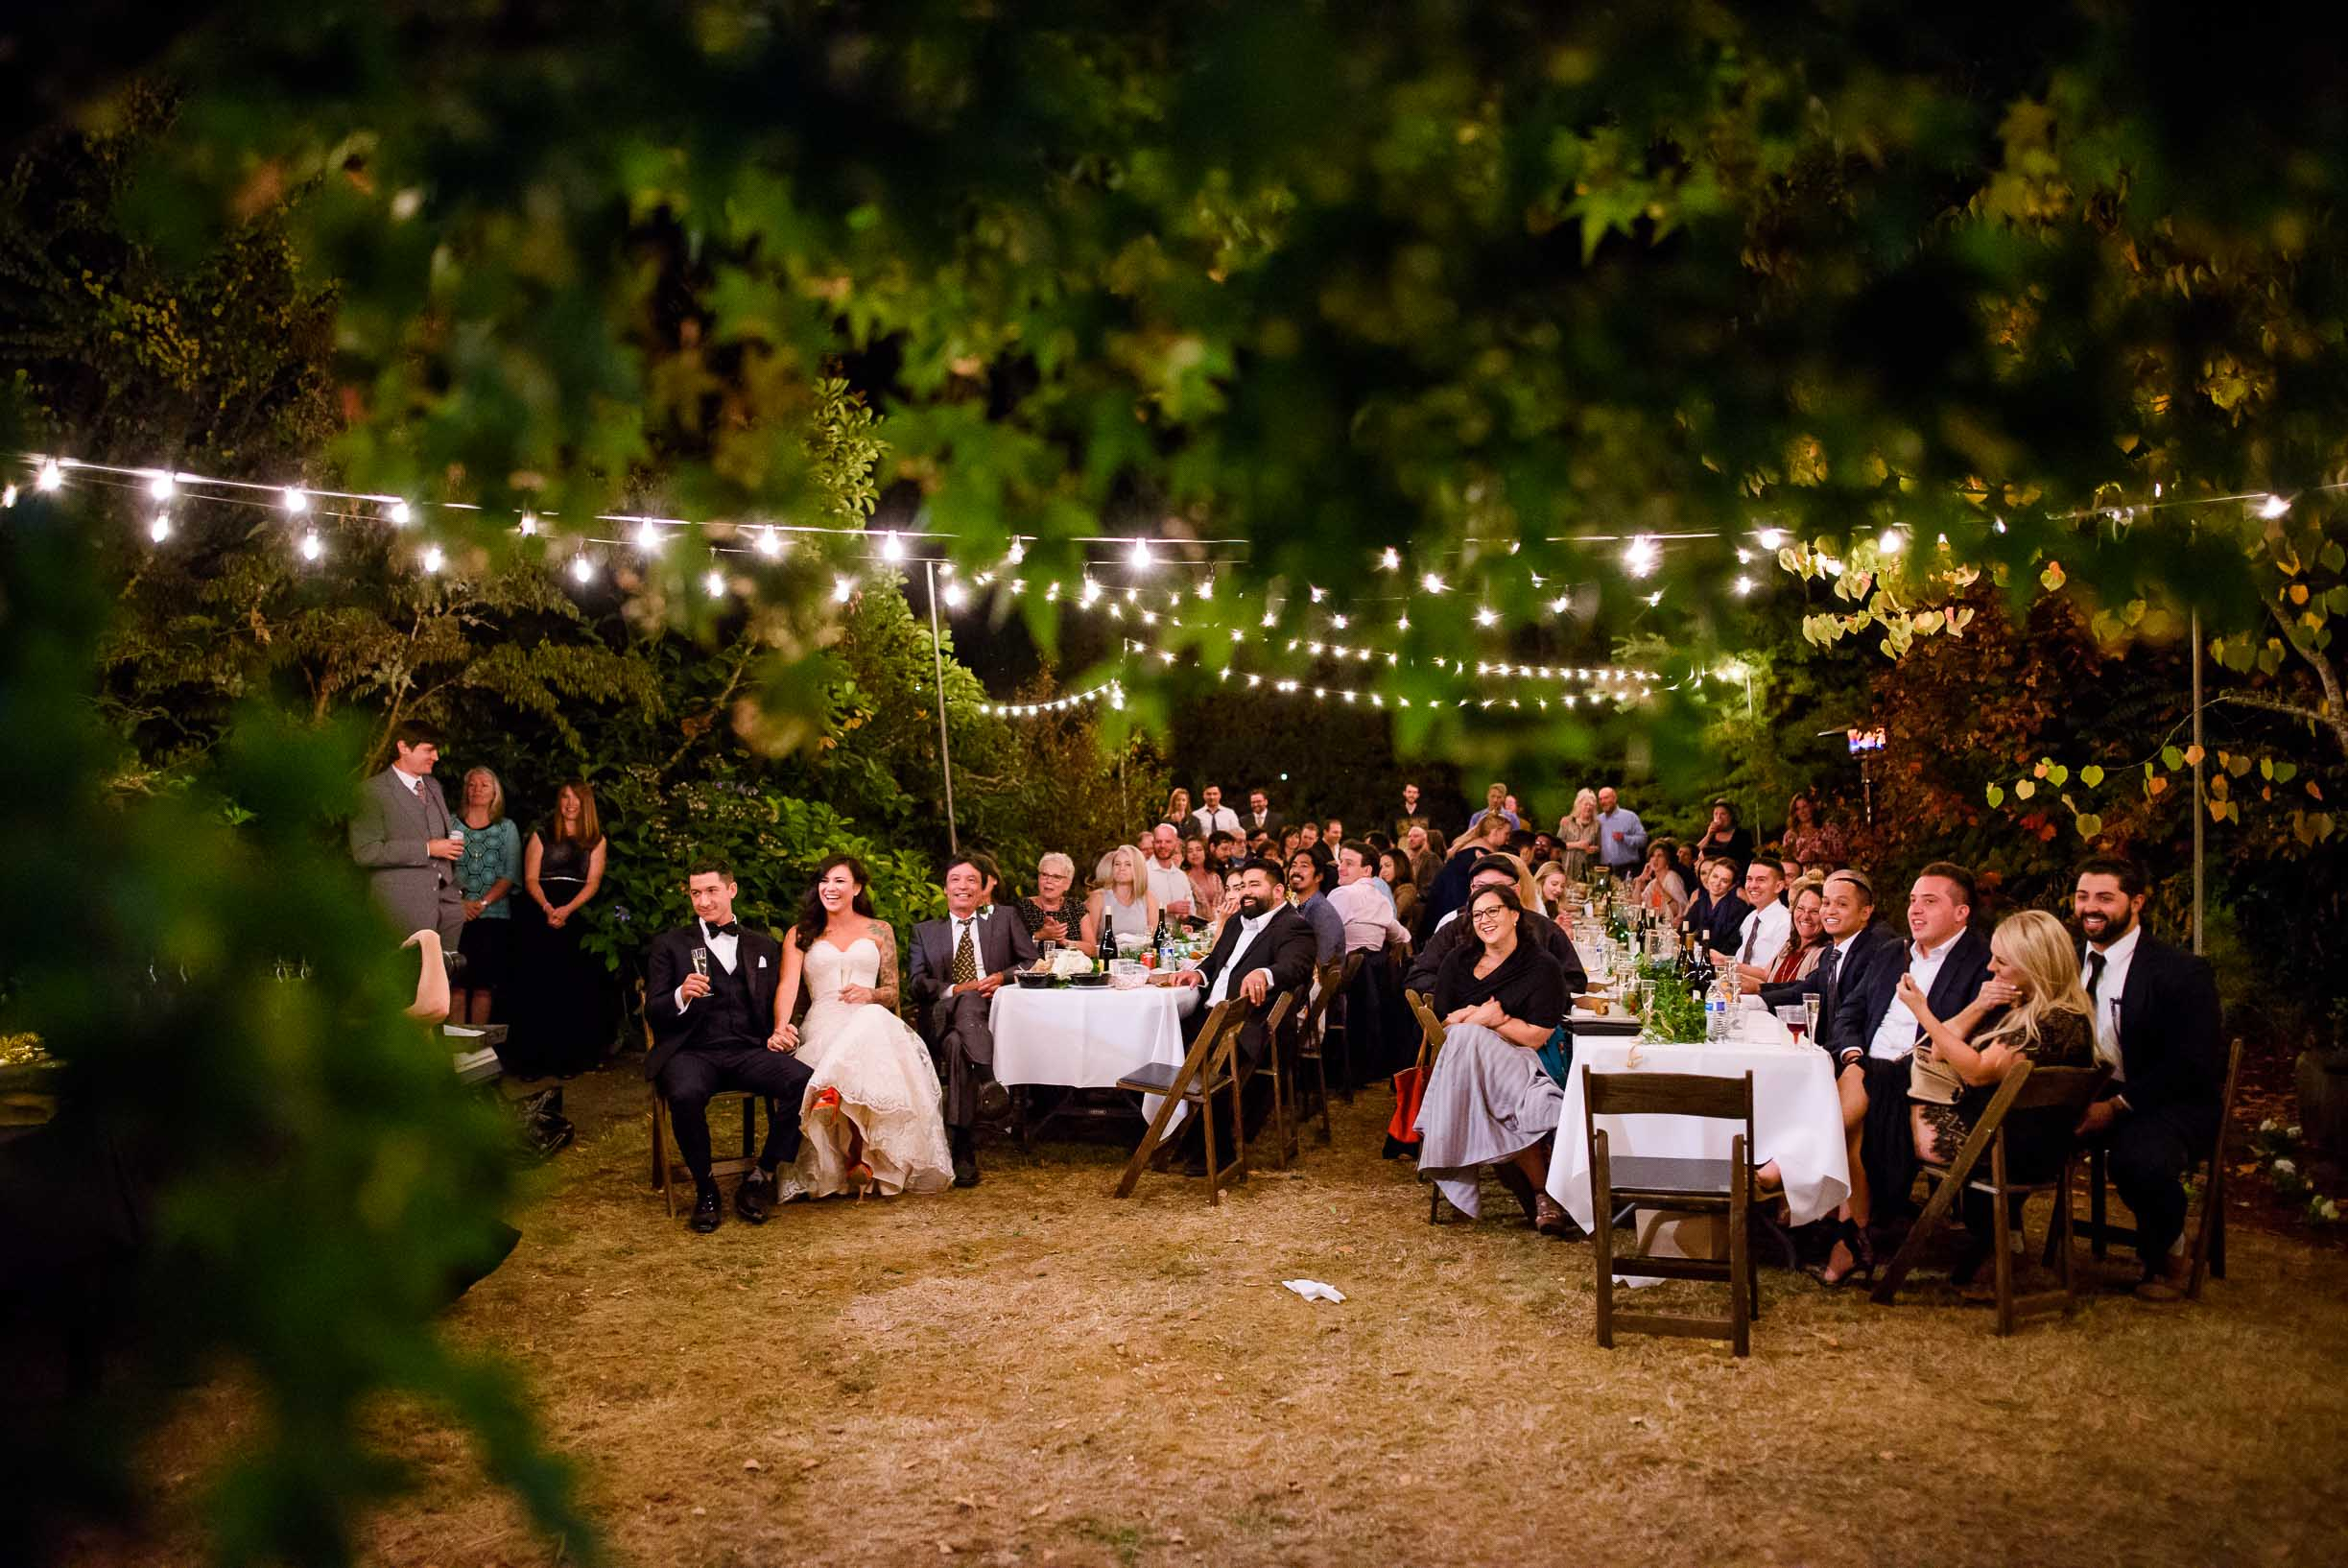 PORTLAND INTAMATE BACKYARD WEDDING 106.jpg